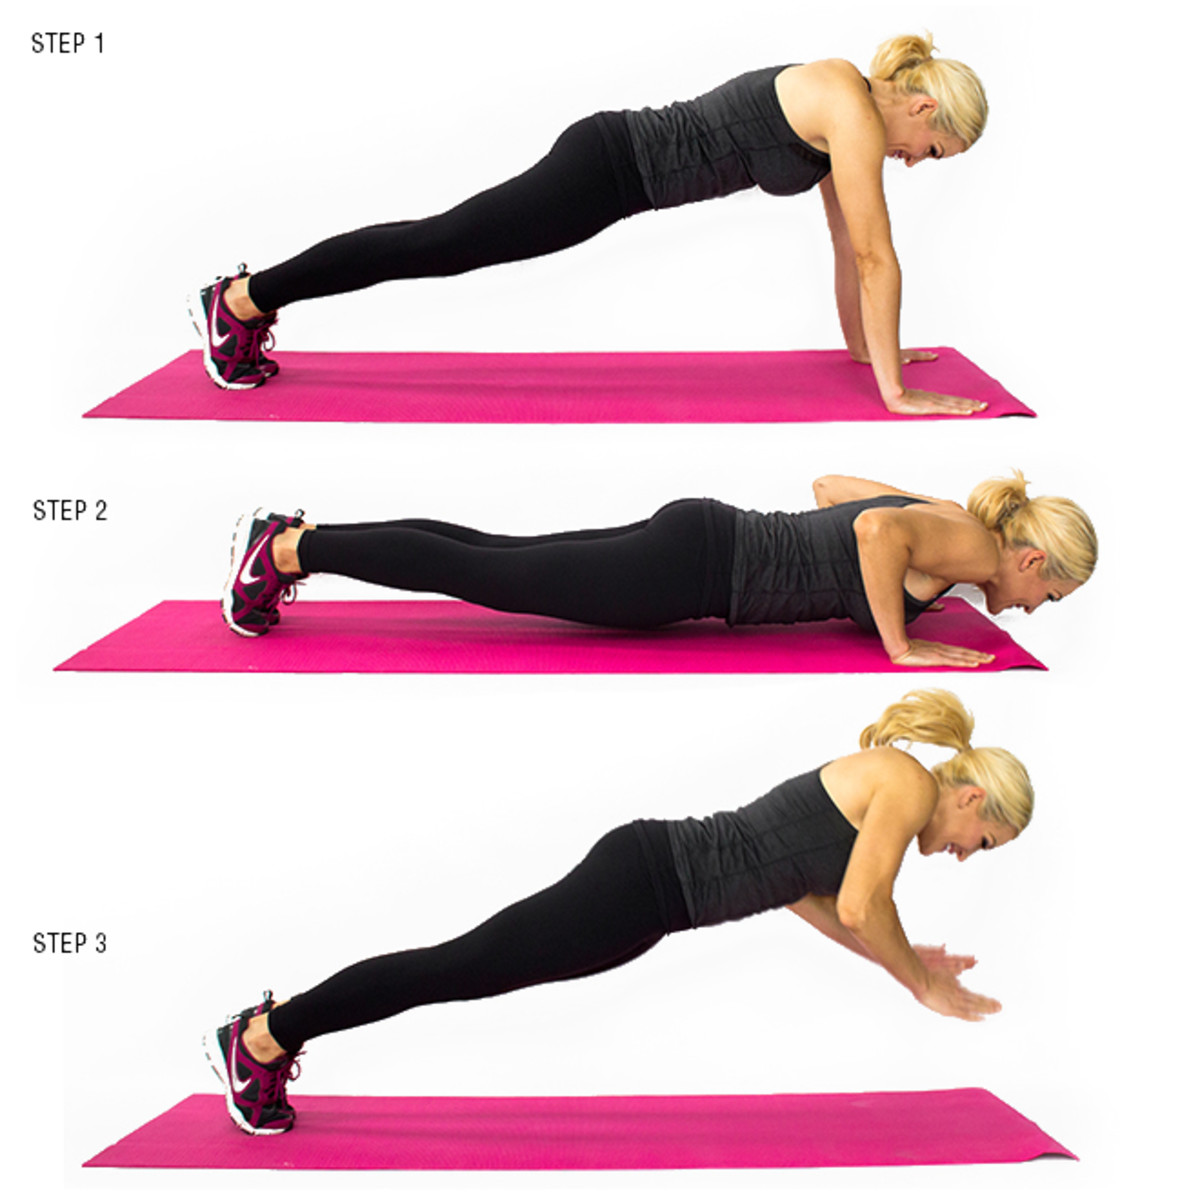 Push-up with a hand clap.